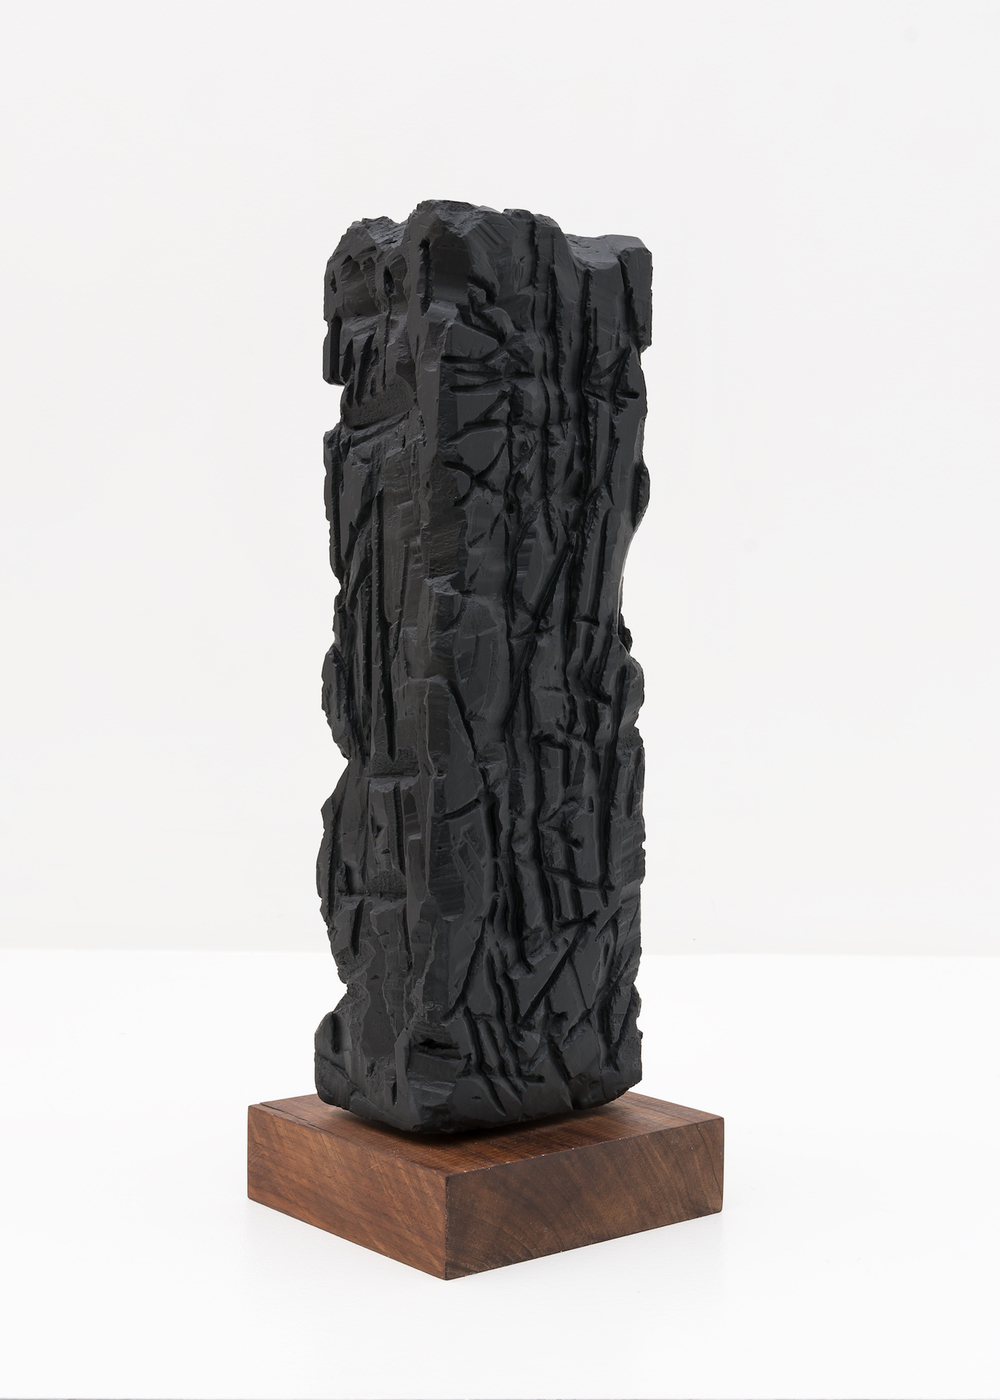 "Anthony Pearson Untitled (Freestanding Sculpture) 2015 Medium coated pigmented white art plaster with oiled walnut base 16 ¼"" x 3 ½"" x 3 ½"" AP373"